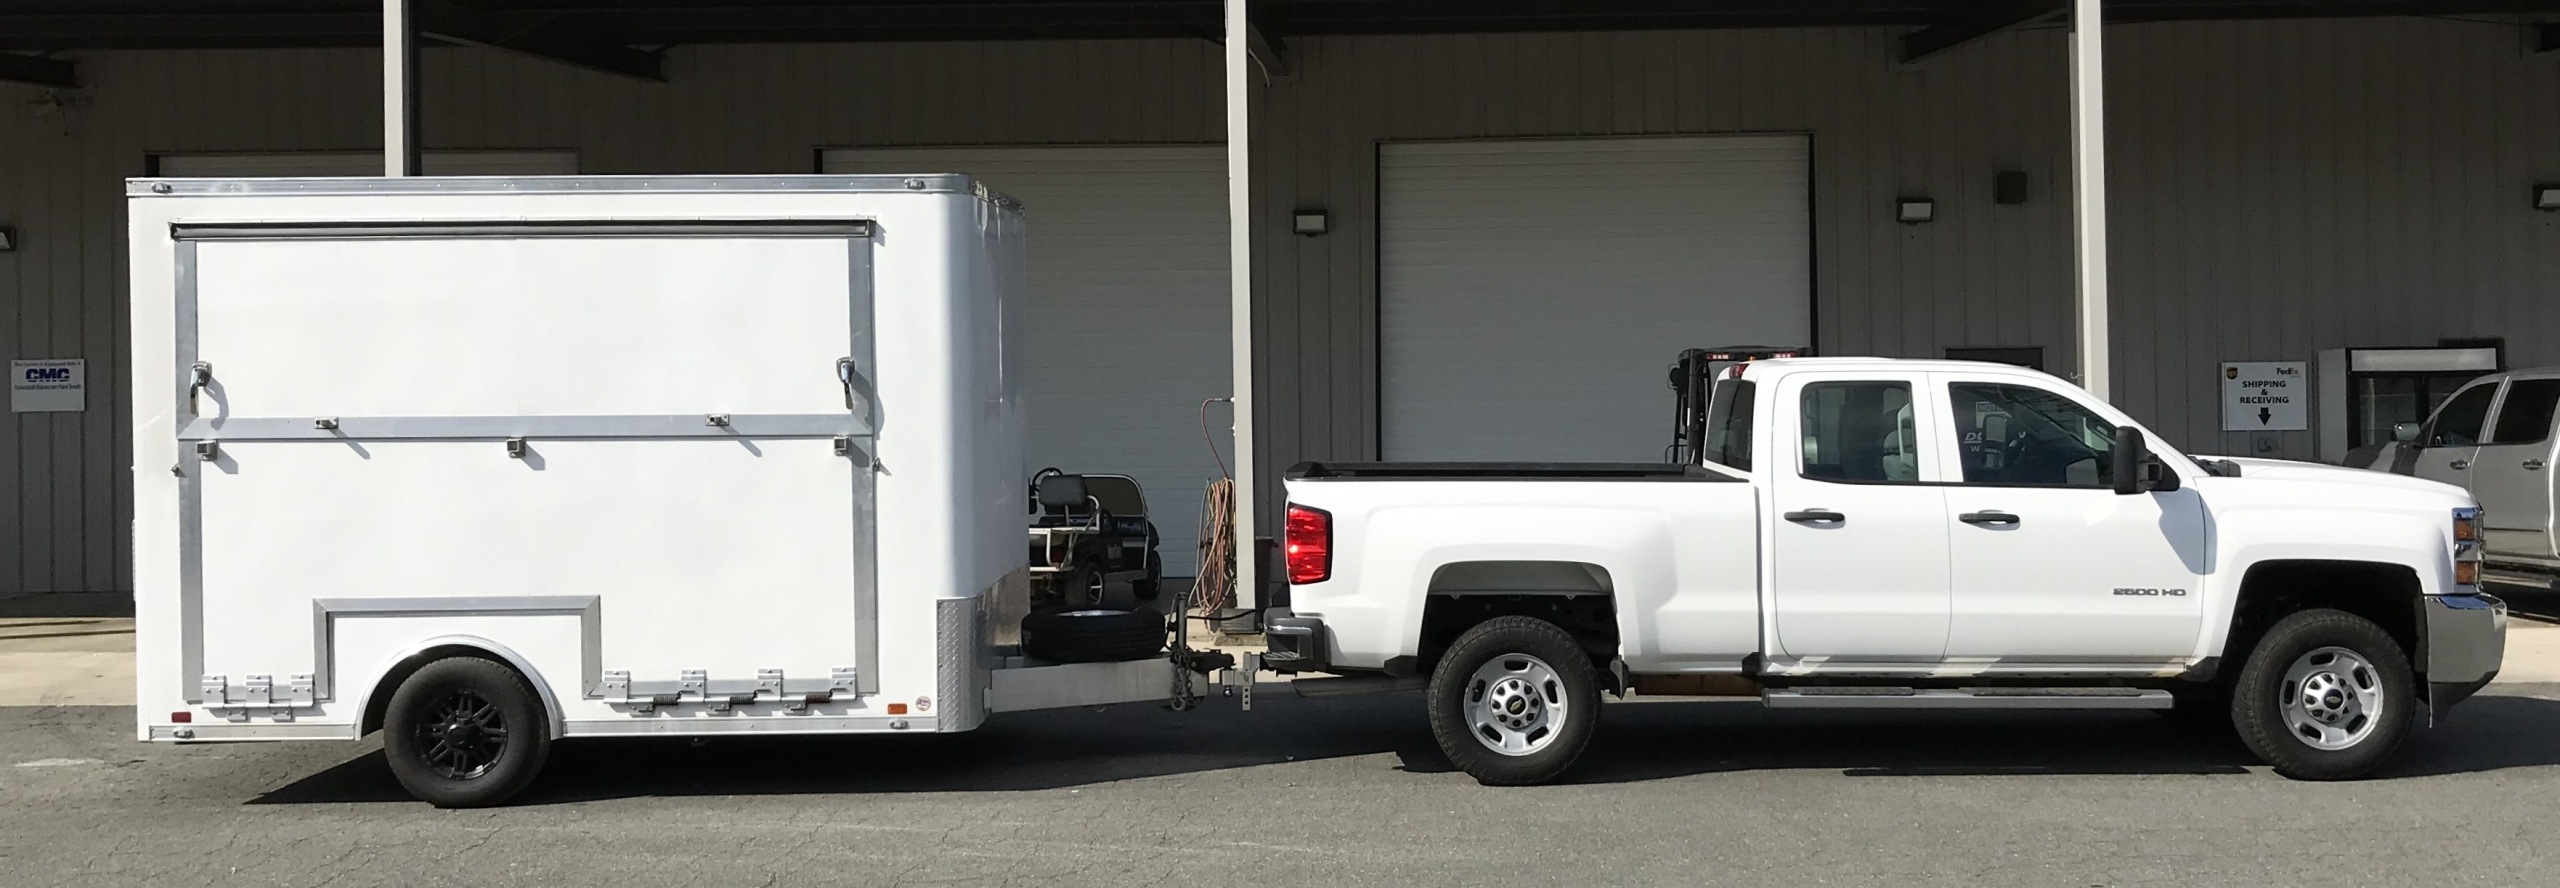 small experiential display trailer easy towing